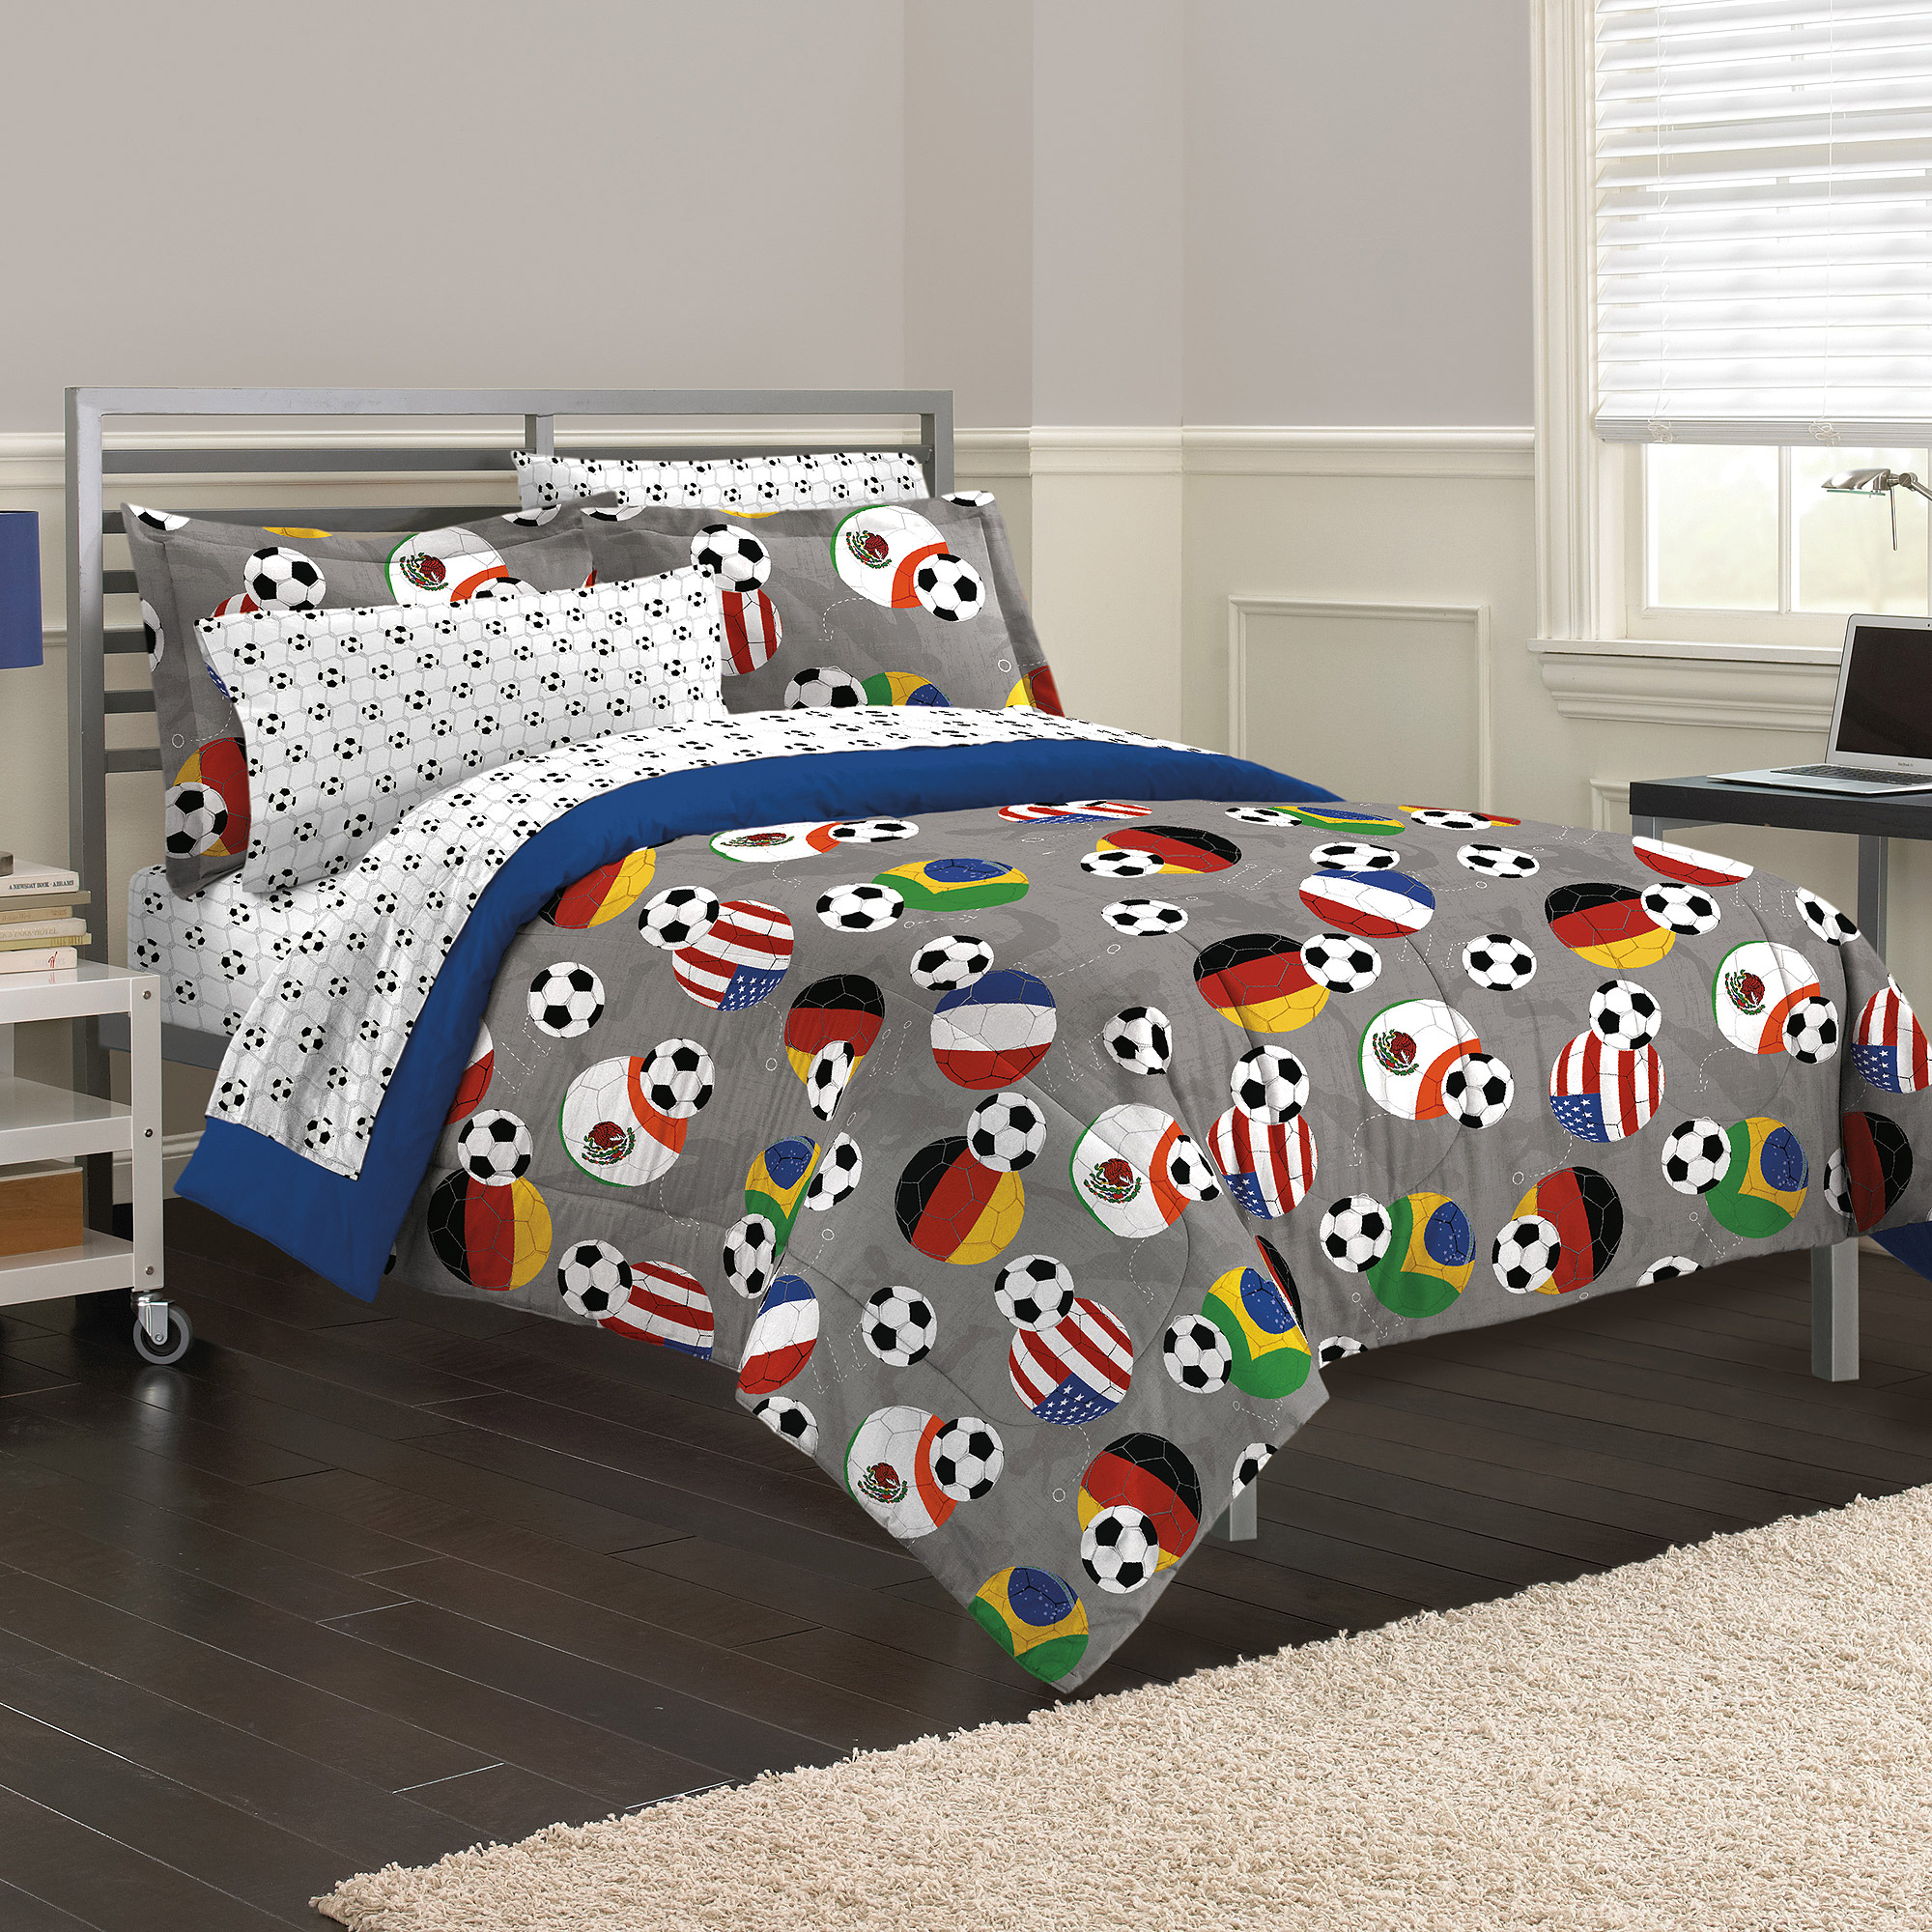 My Room Soccer Fever Mini Bed In A Bag Bedding Set